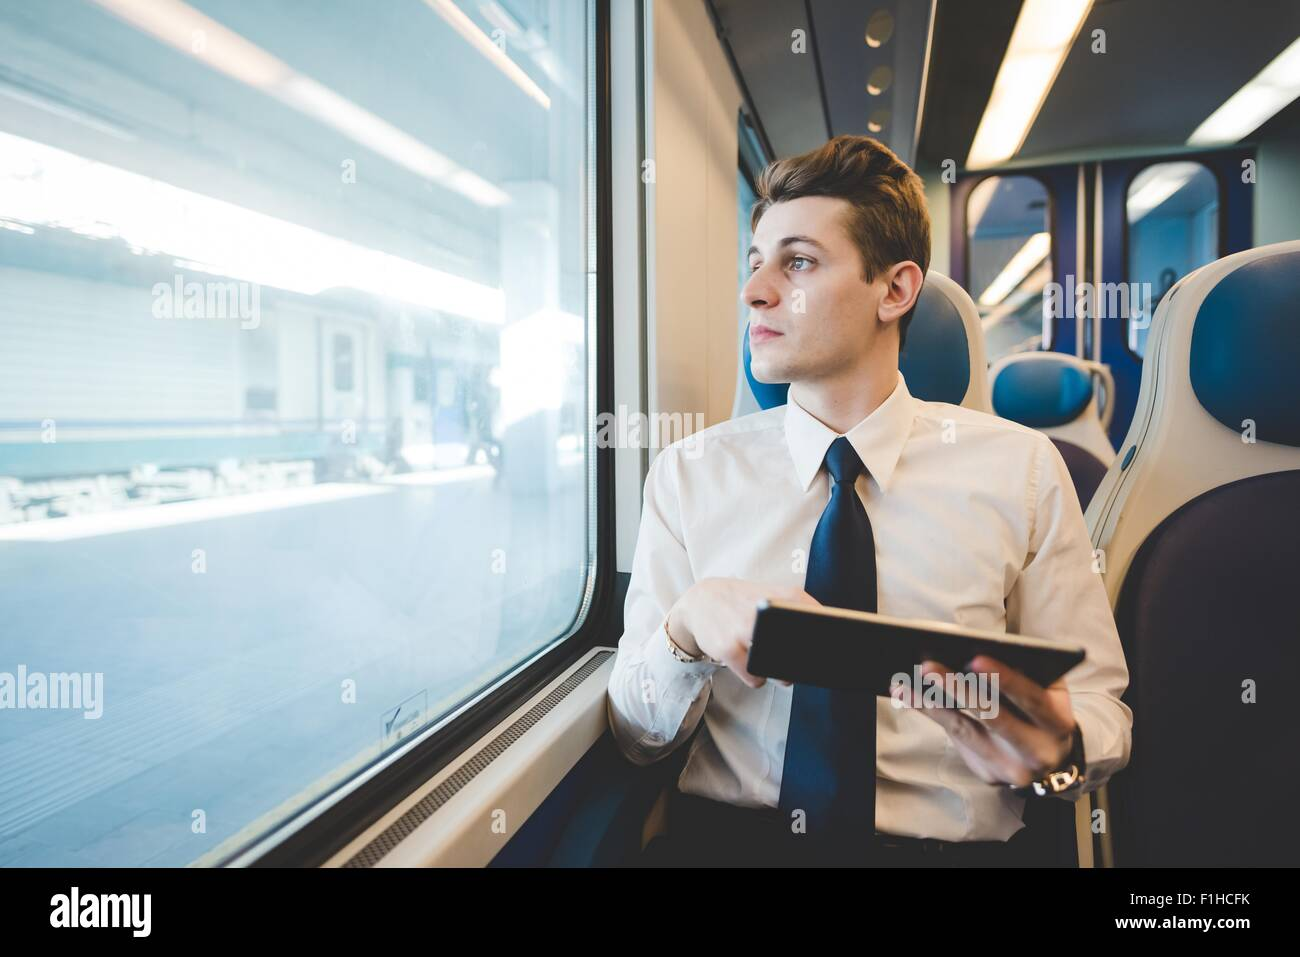 Portrait of young businessman commuter using digital tablet on train. - Stock Image